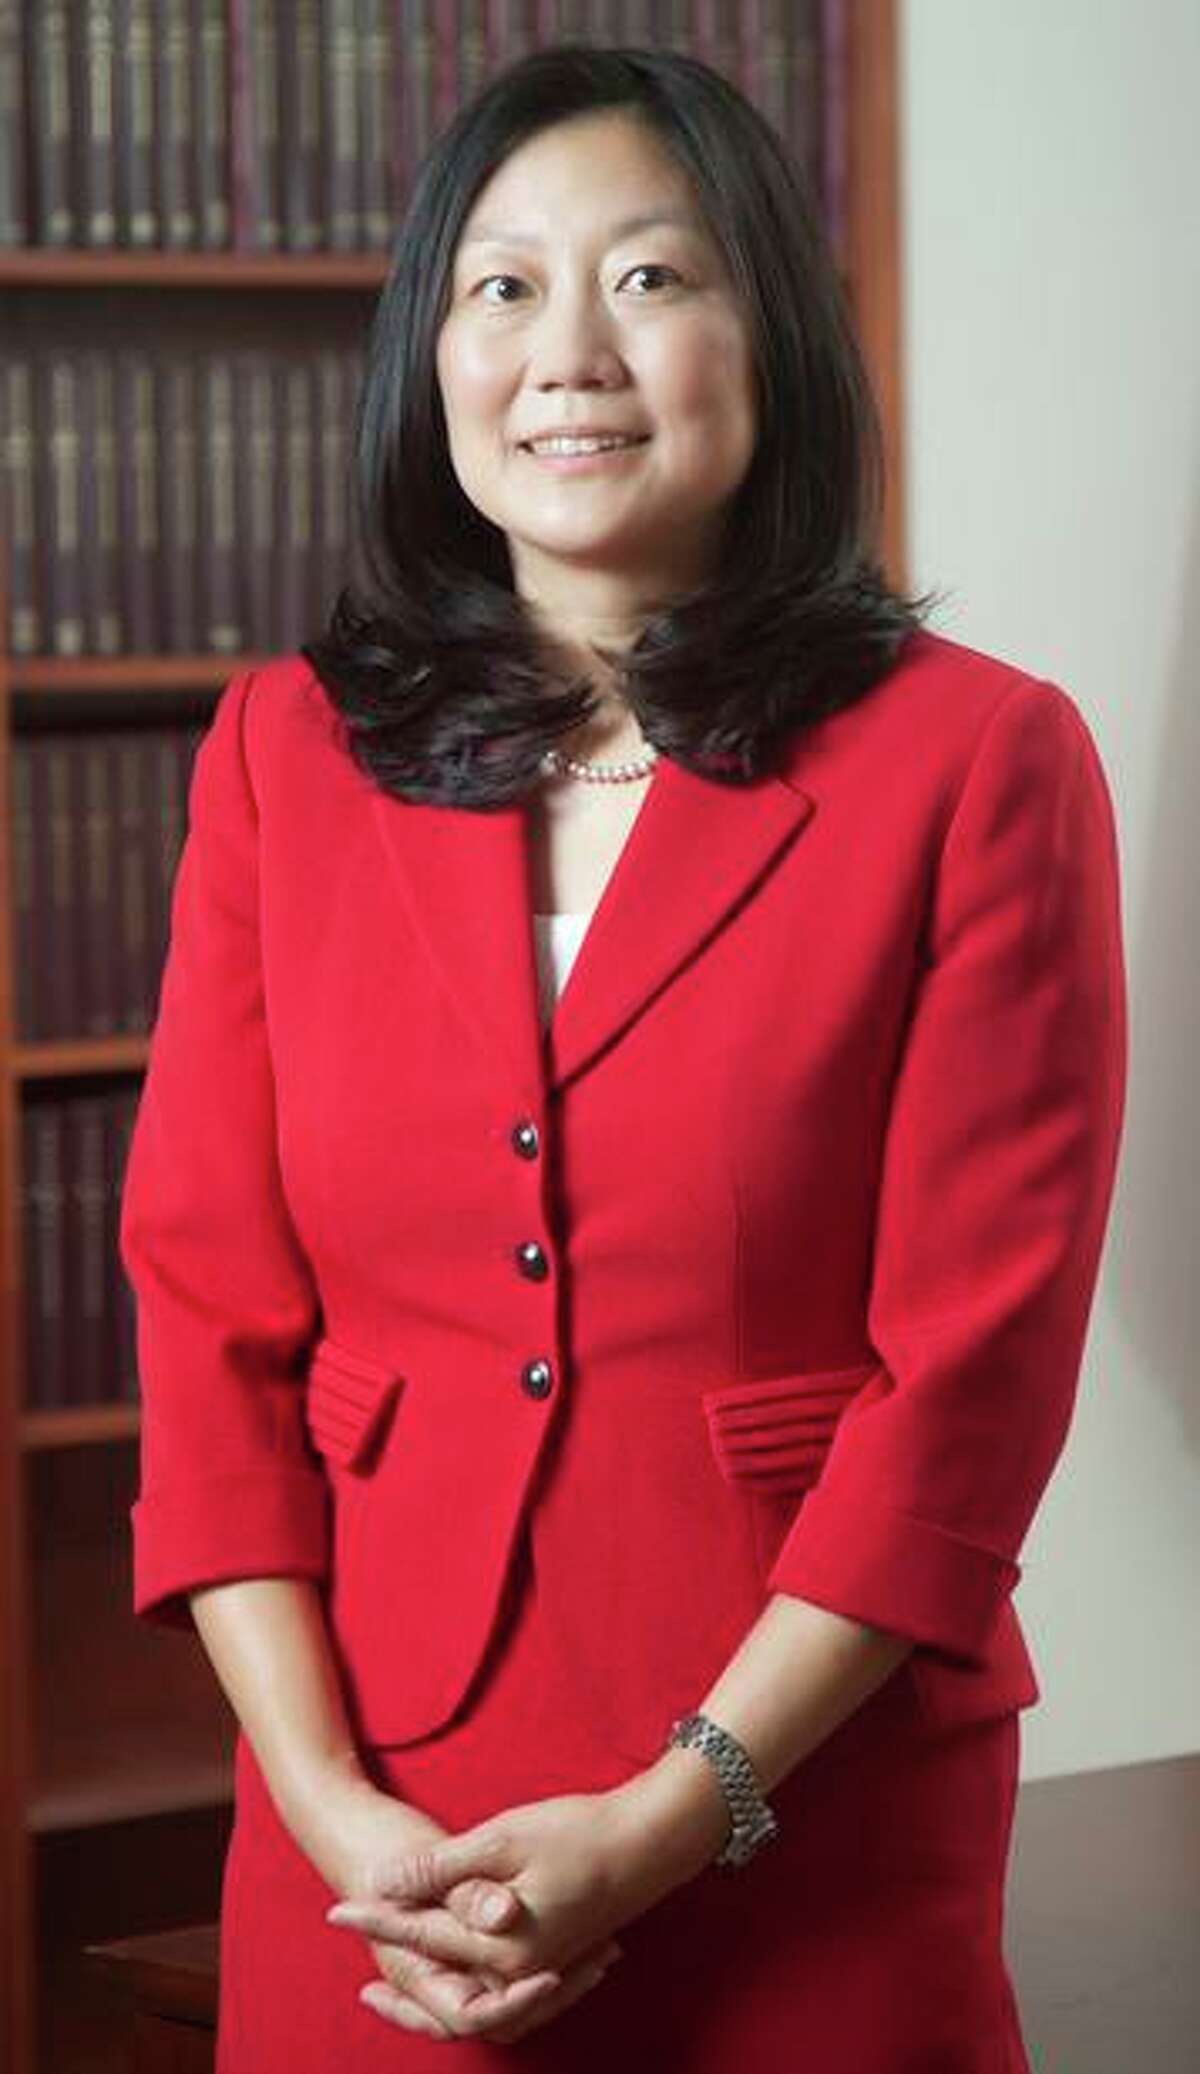 U.S. District Judge Lucy Koh must reconsider a death penalty appeal.